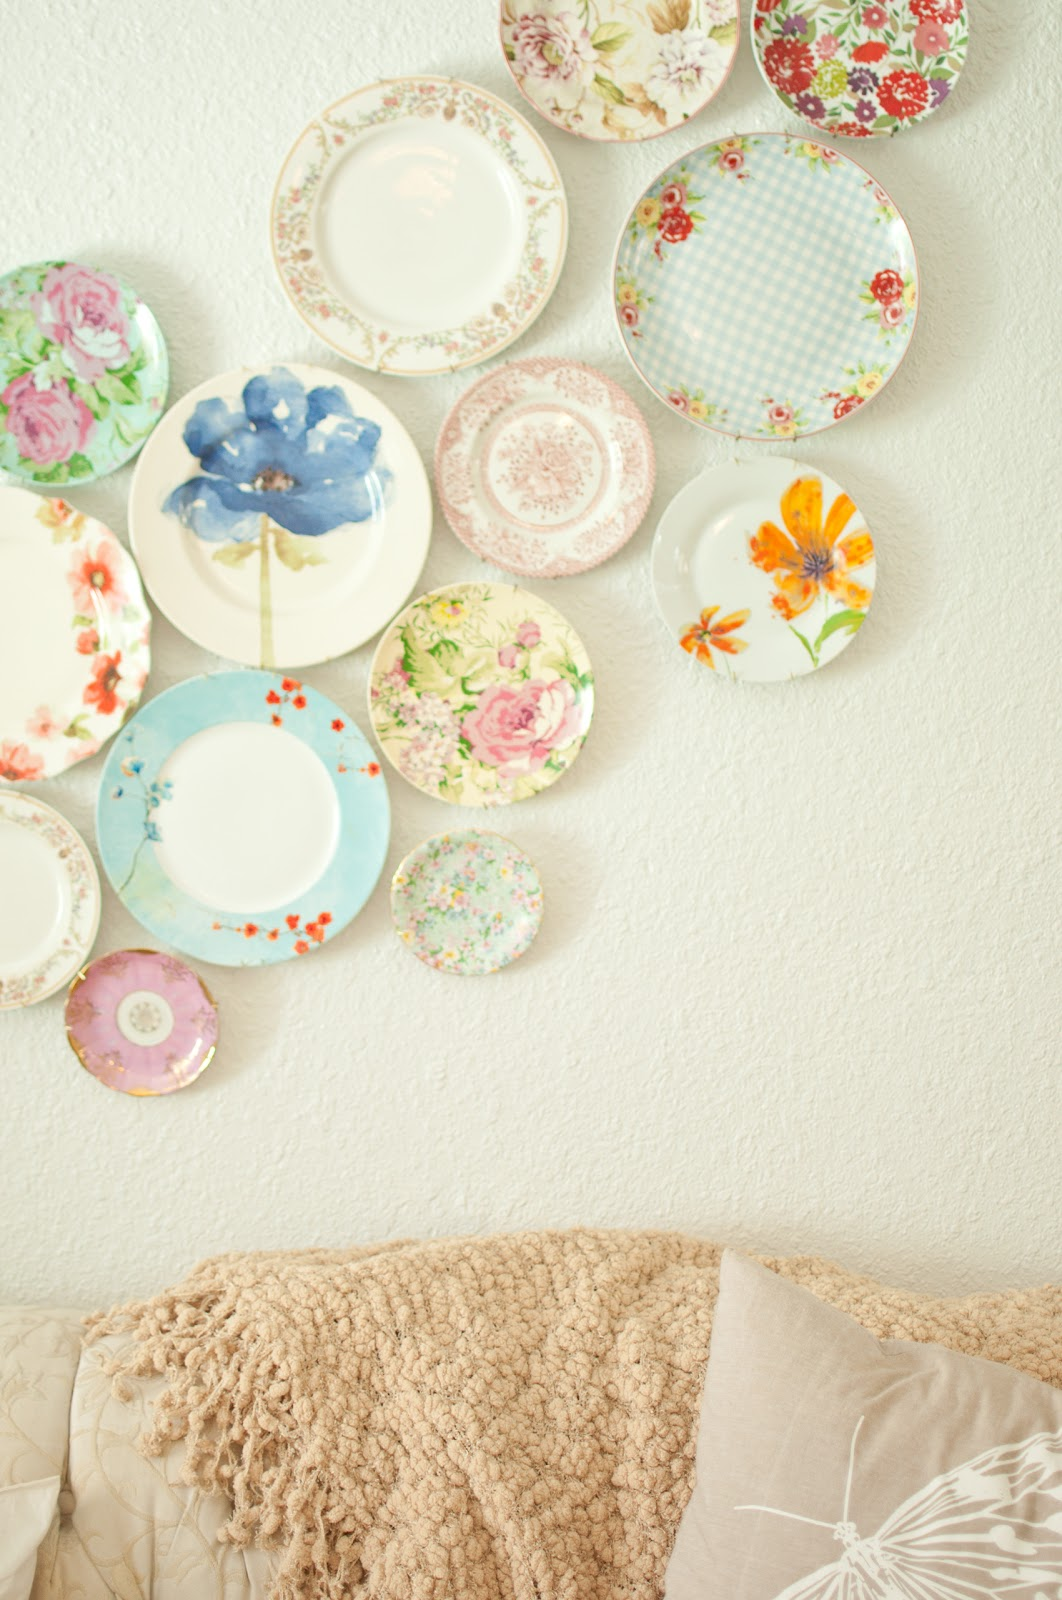 A Woman 39 S Haven Planning For A Kitchen Plate Wall